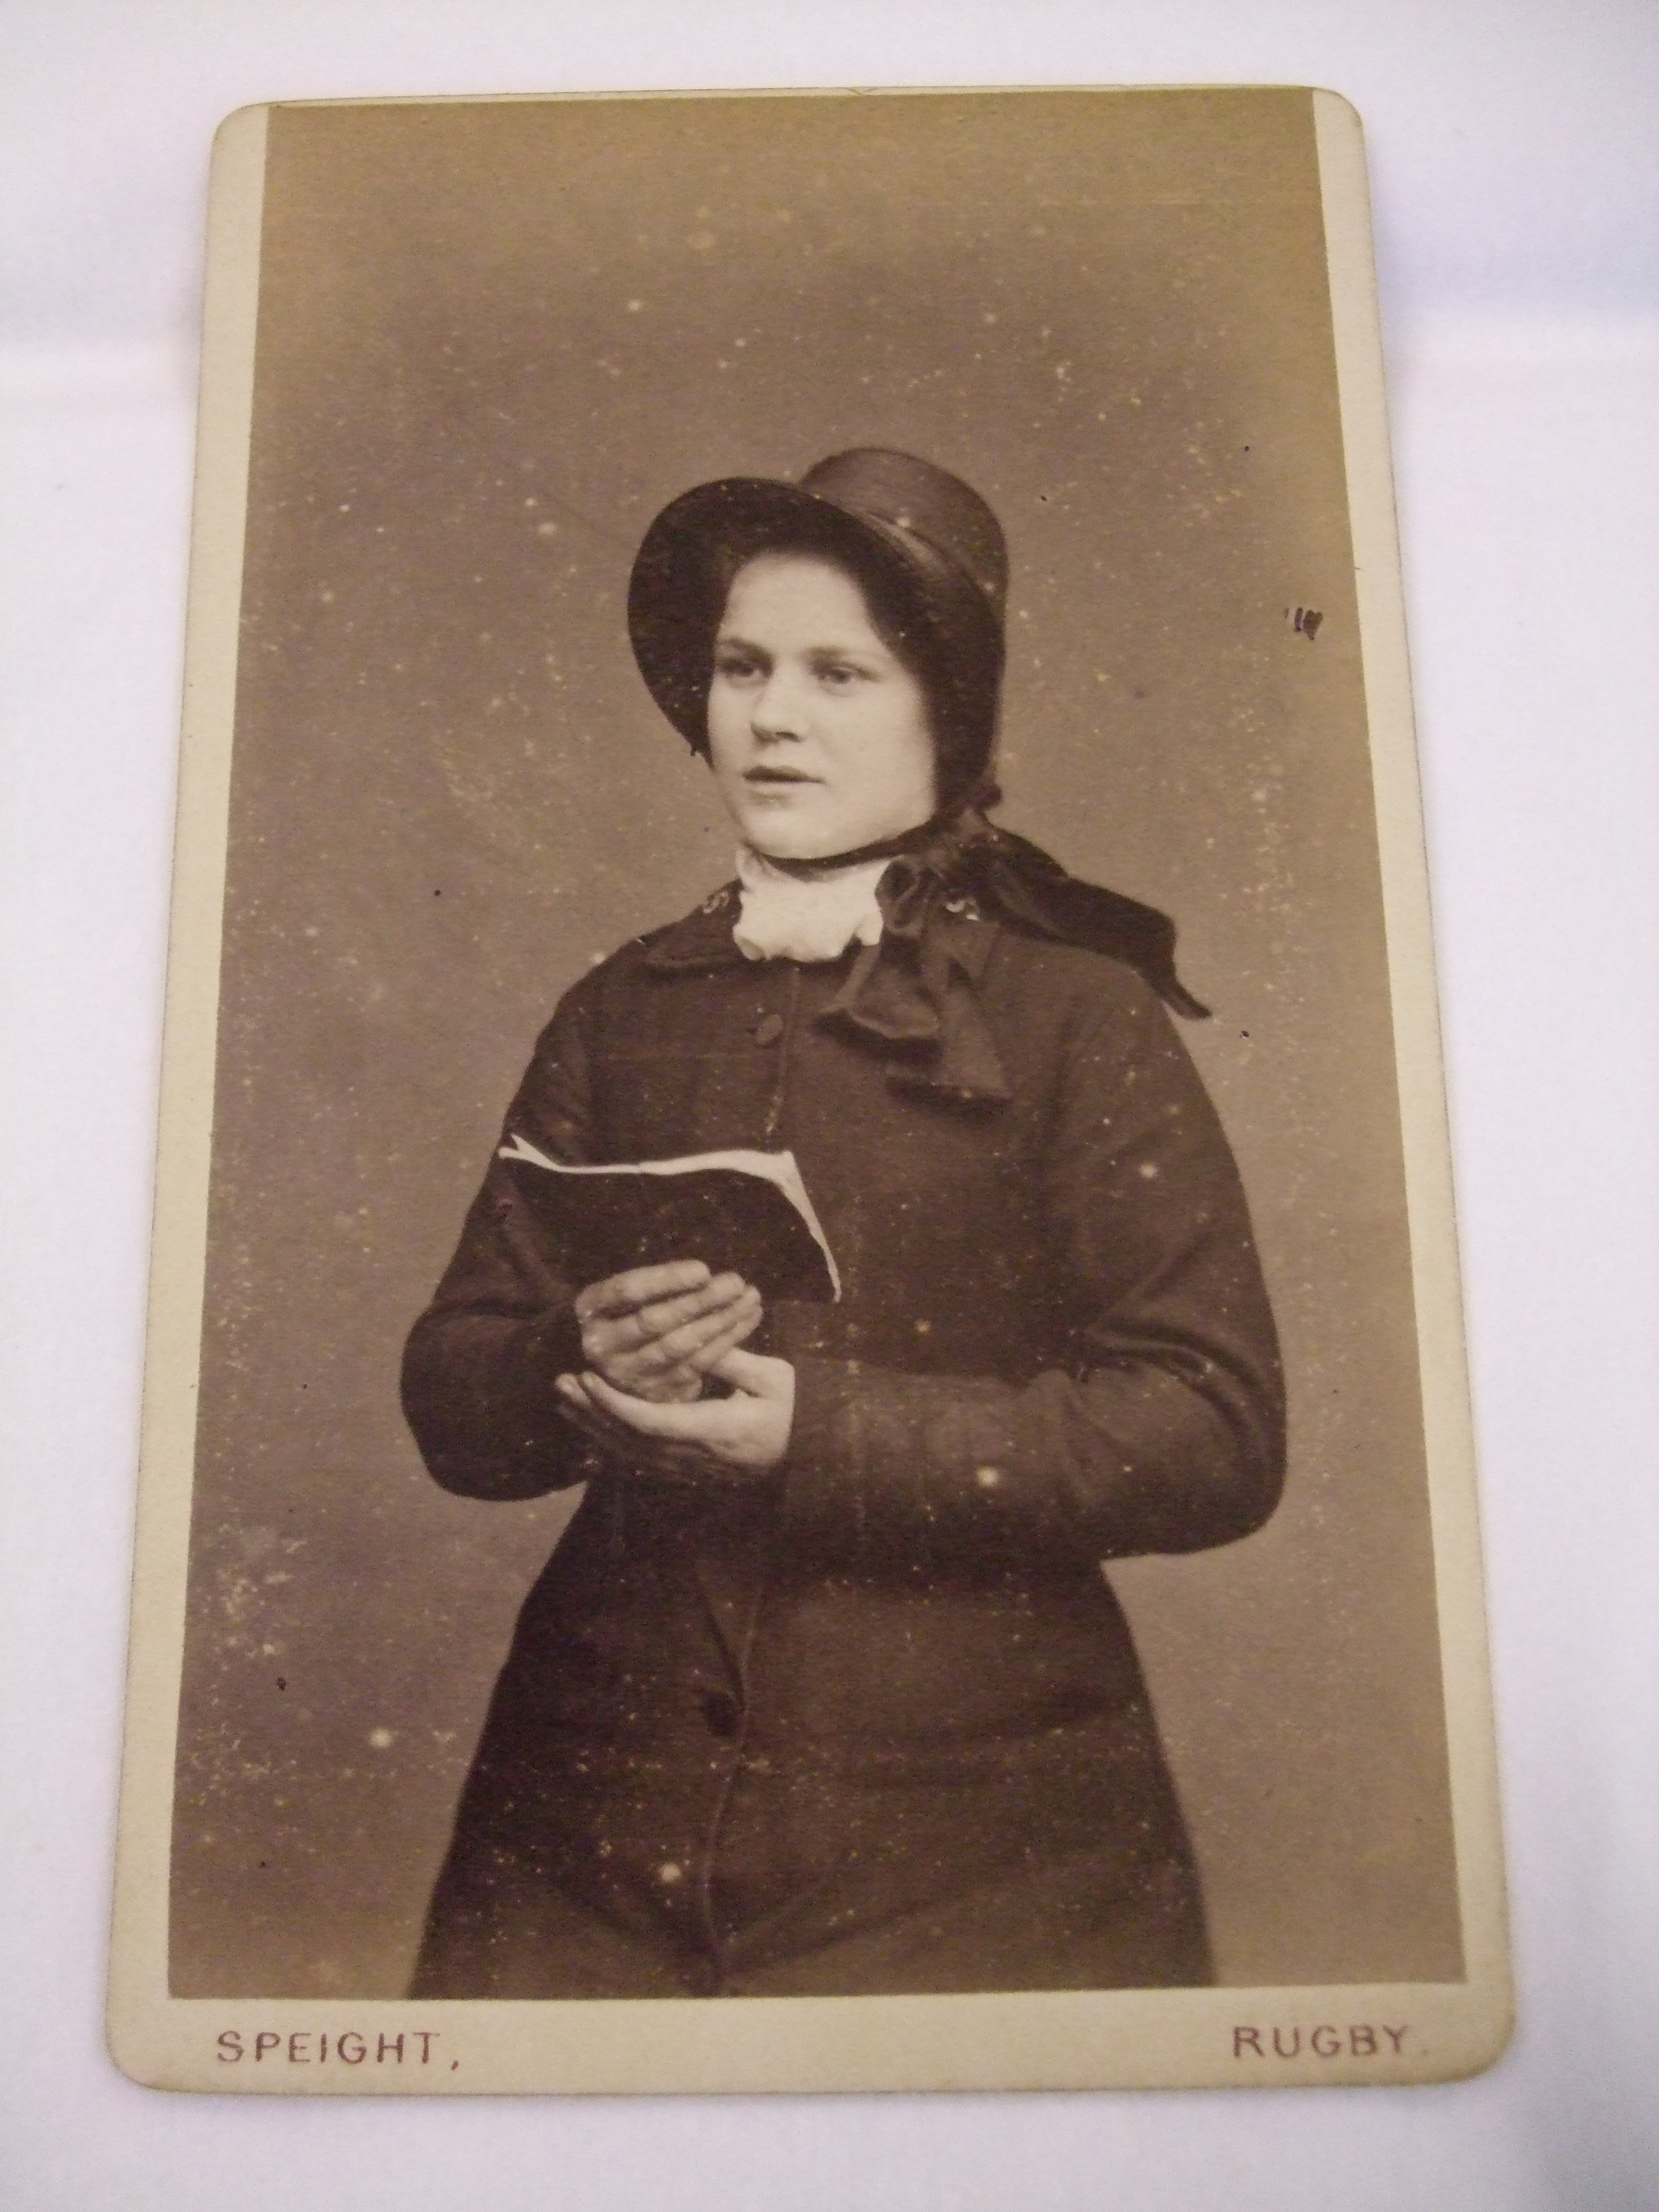 An unknown women features on this carte-de-visite